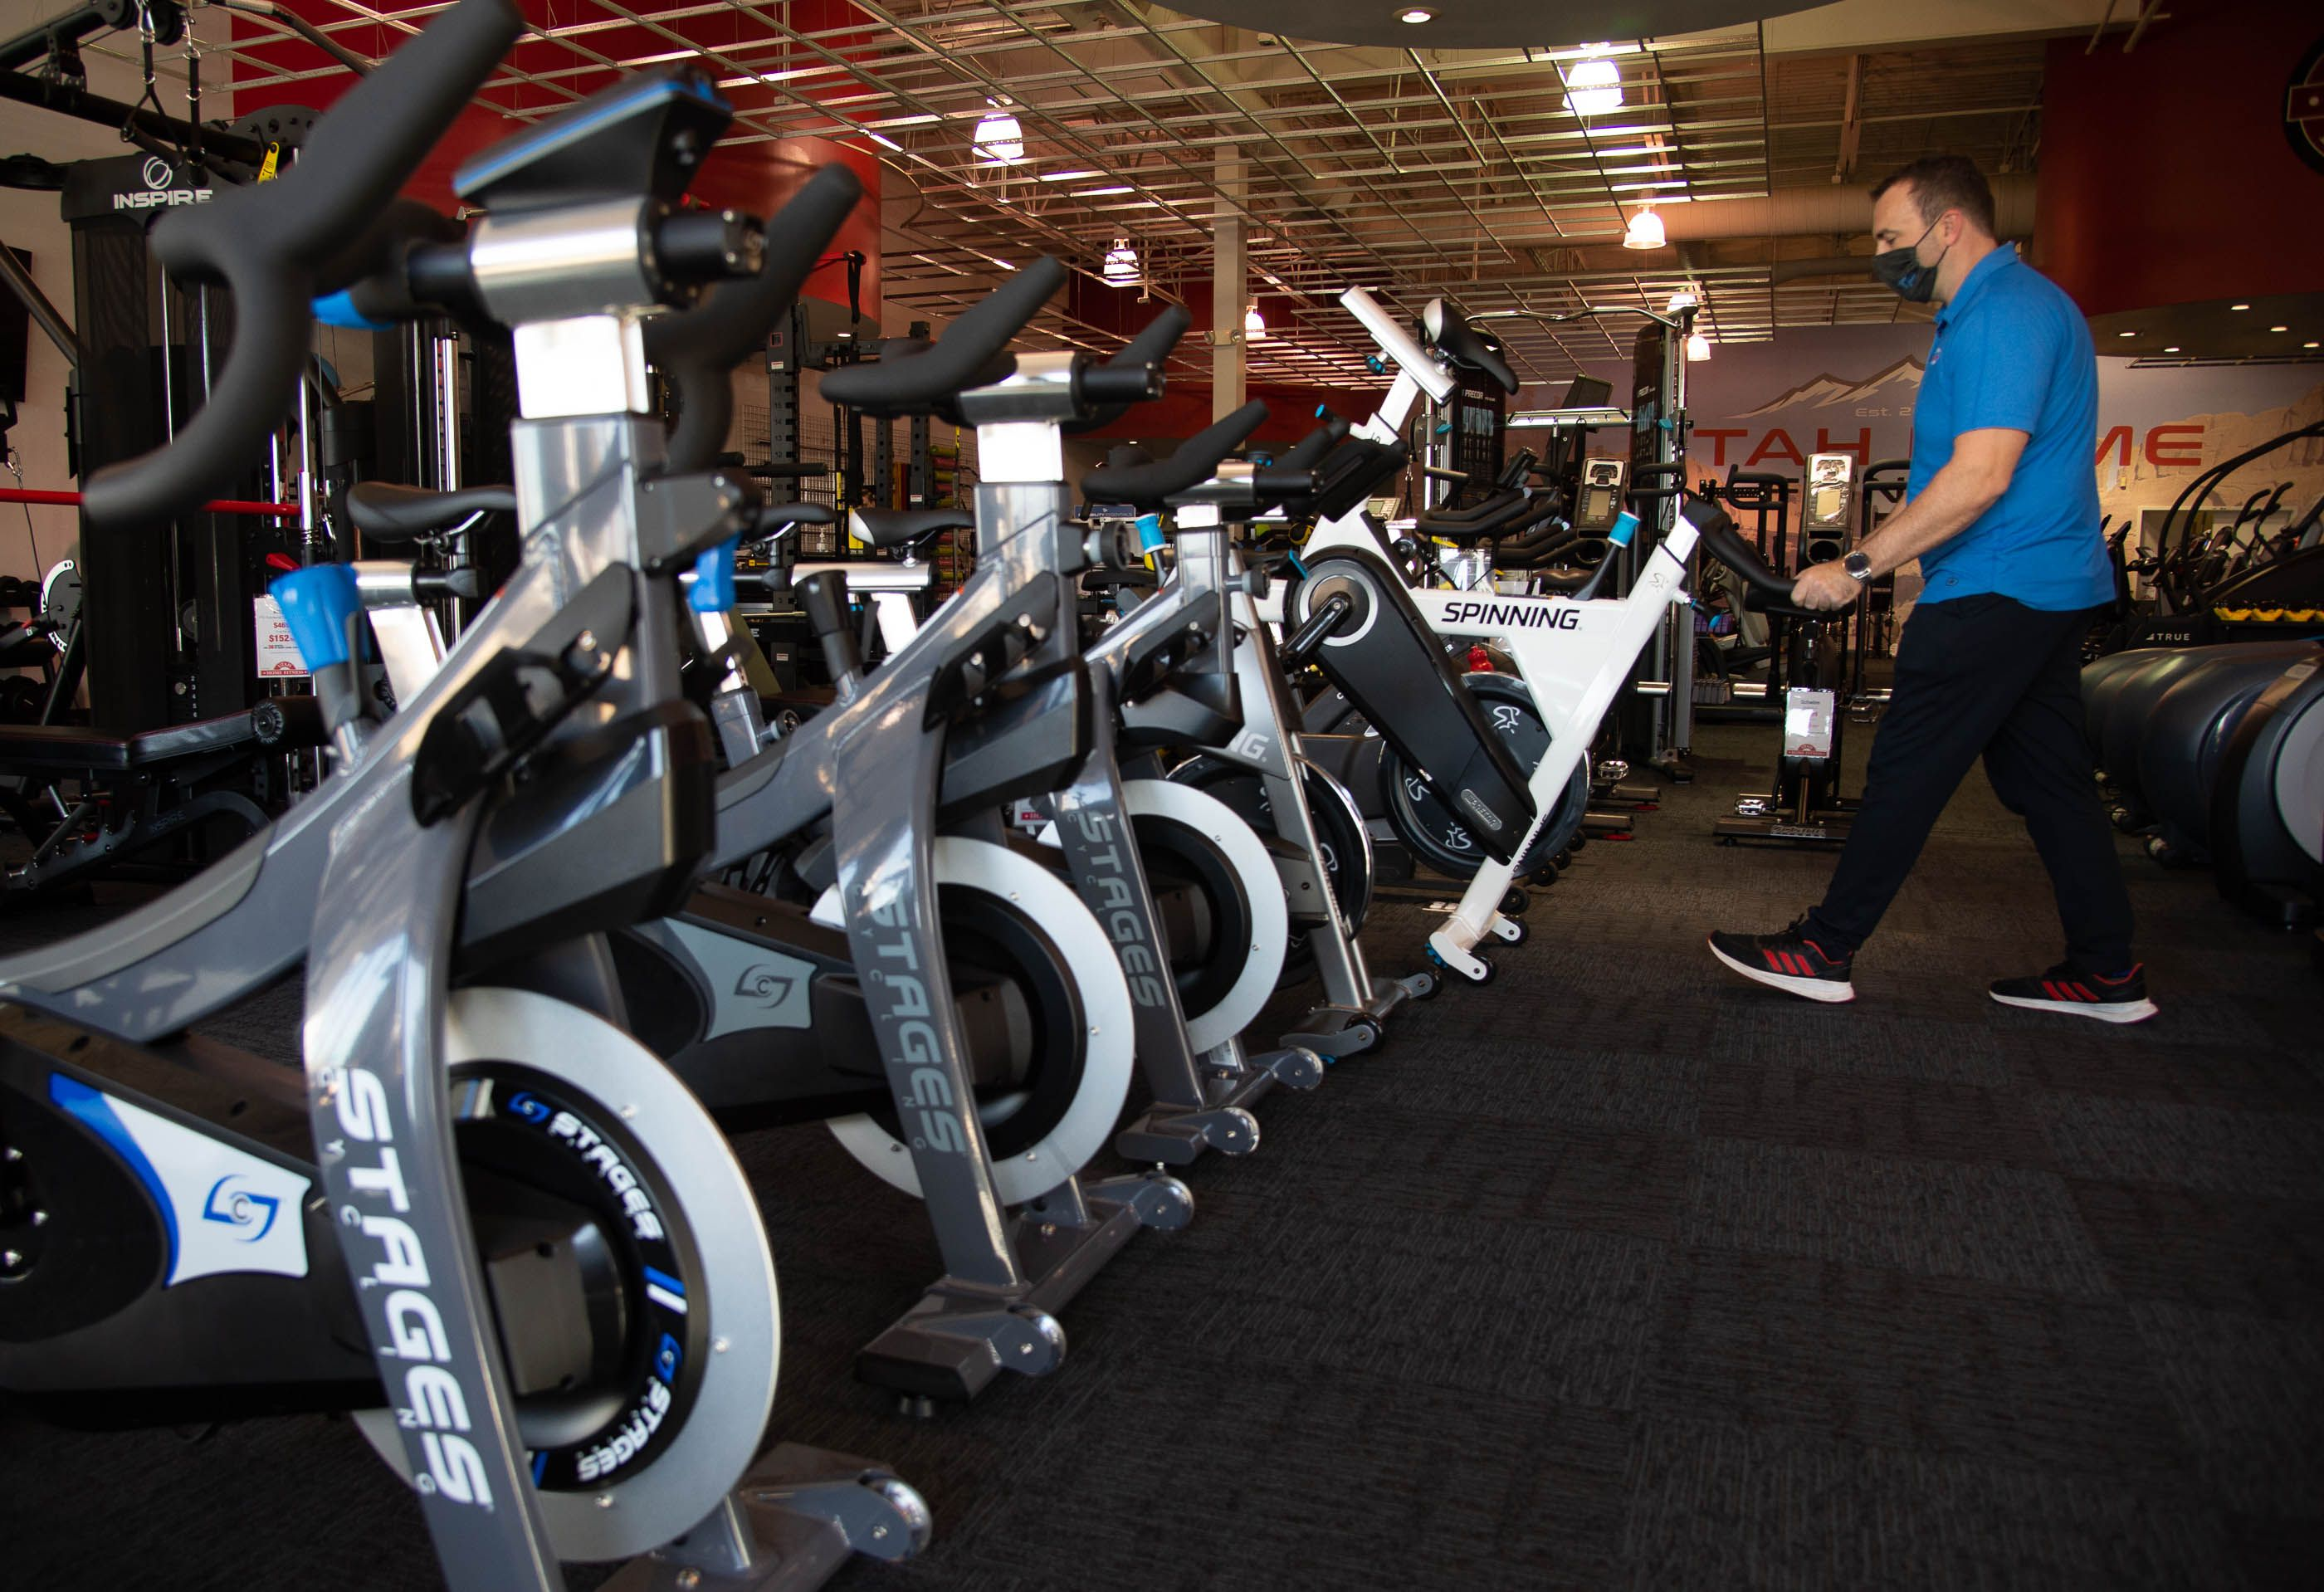 (Francisco Kjolseth  |  The Salt Lake Tribune) Clint Eisinger, operations manager at Utah Home Fitness in Sandy, has seen brisk sales of stationary bikes as the staff takes advantage of a slow moment to catch up on restocking inventory on Wednesday, Oct. 22, 2020. Home fitness equipment sales boomed in March and April when gyms closed because of the coronavirus. Everything from inexpensive dumbbells to premium treadmills and ellipticals were wiped out of stores and warehouses. Record sales continue throughout the summer — normally the slow time for the industry, and store owners expect sales to remain high during the holidays.